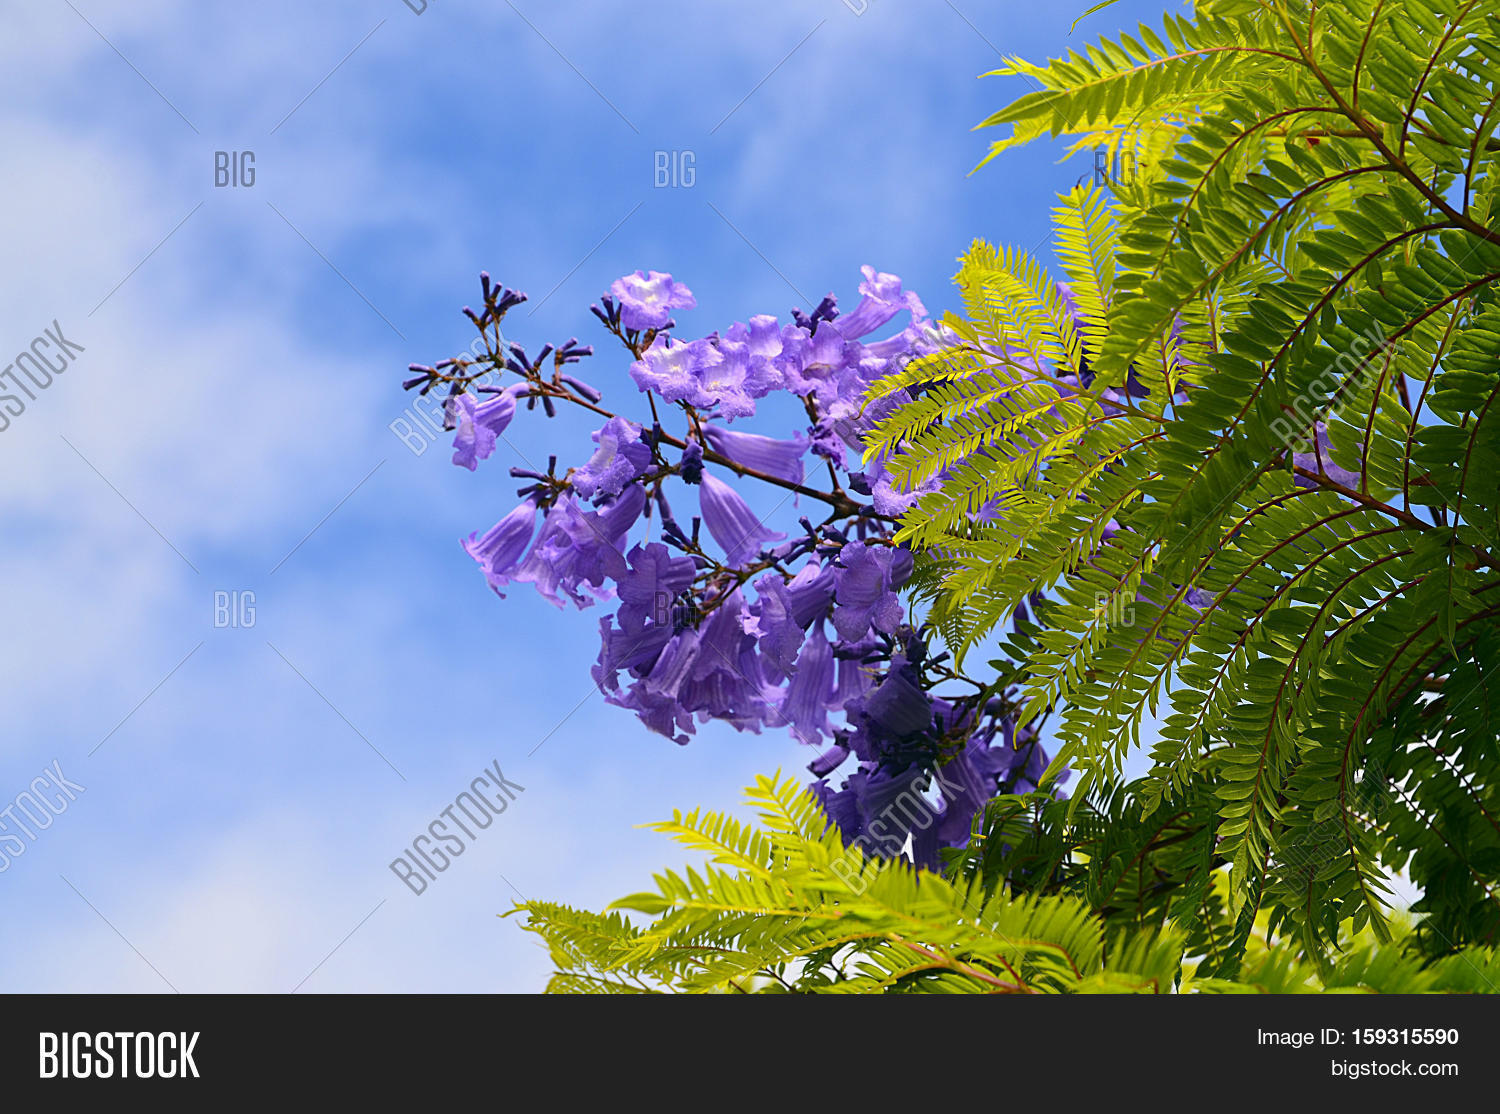 Jacaranda mimosifolia image photo free trial bigstock jacaranda mimosifolia with purple blue flowers against the sky in tenerifecanary islands izmirmasajfo